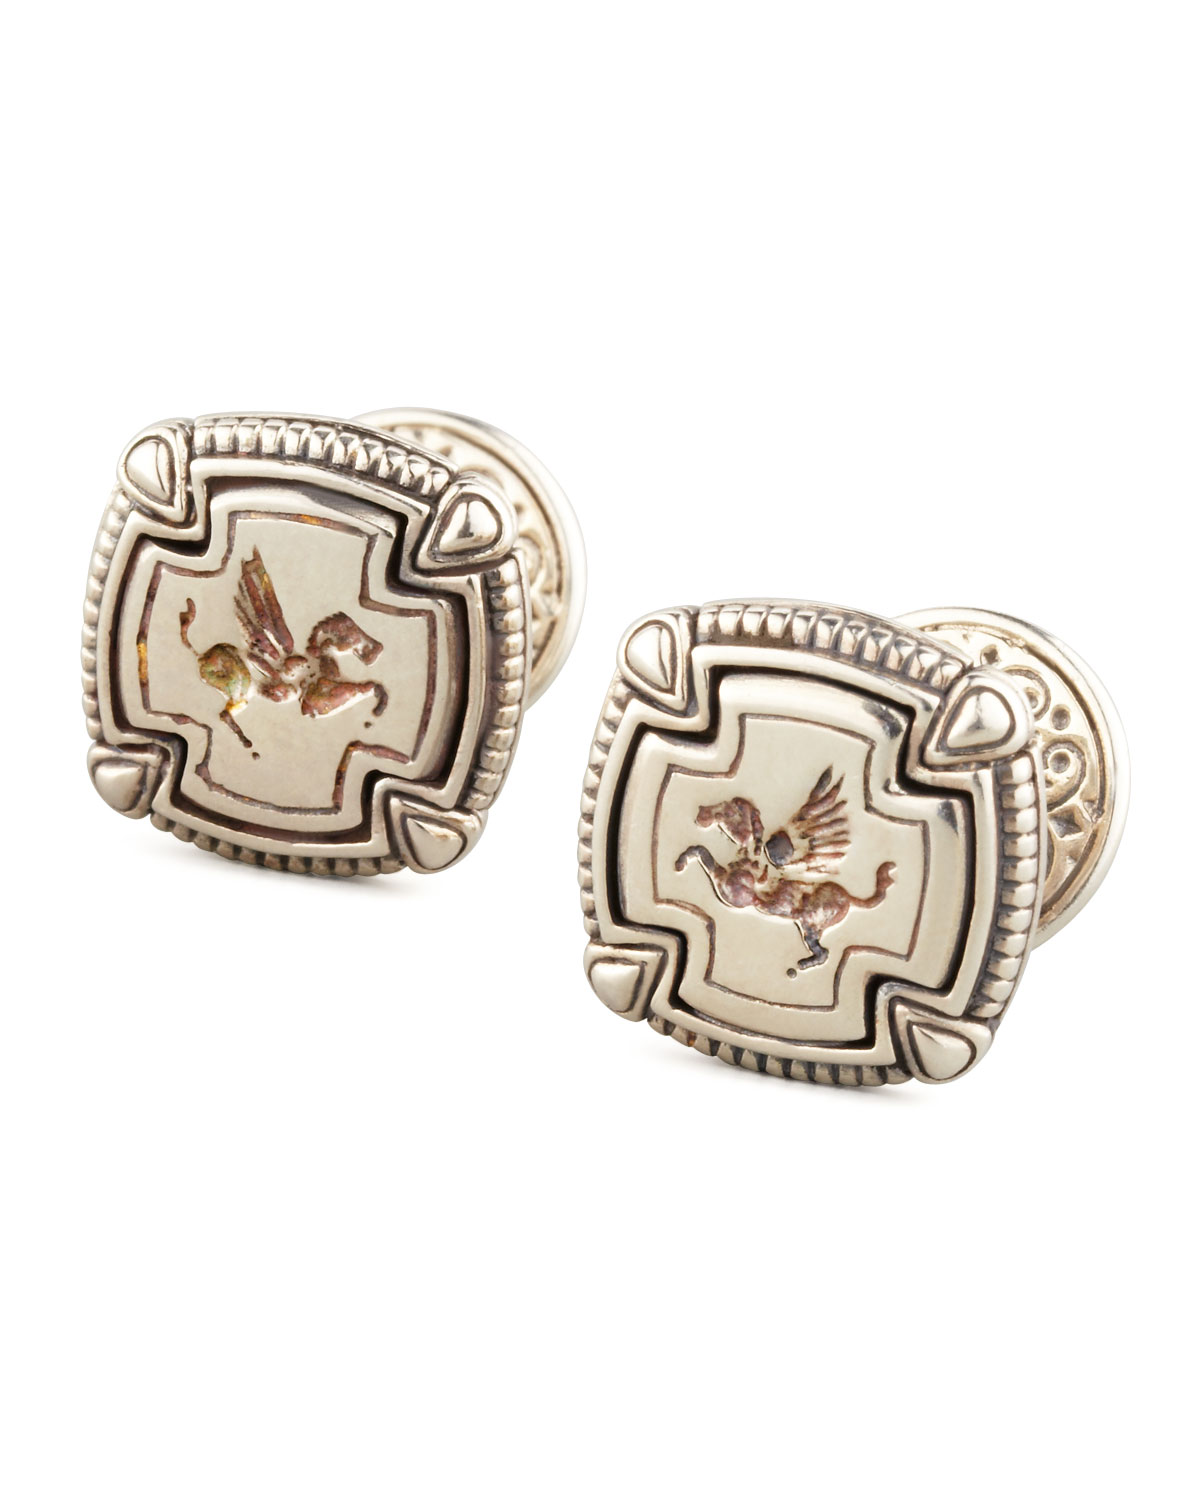 Pegasus Carved Silver Cuff Links